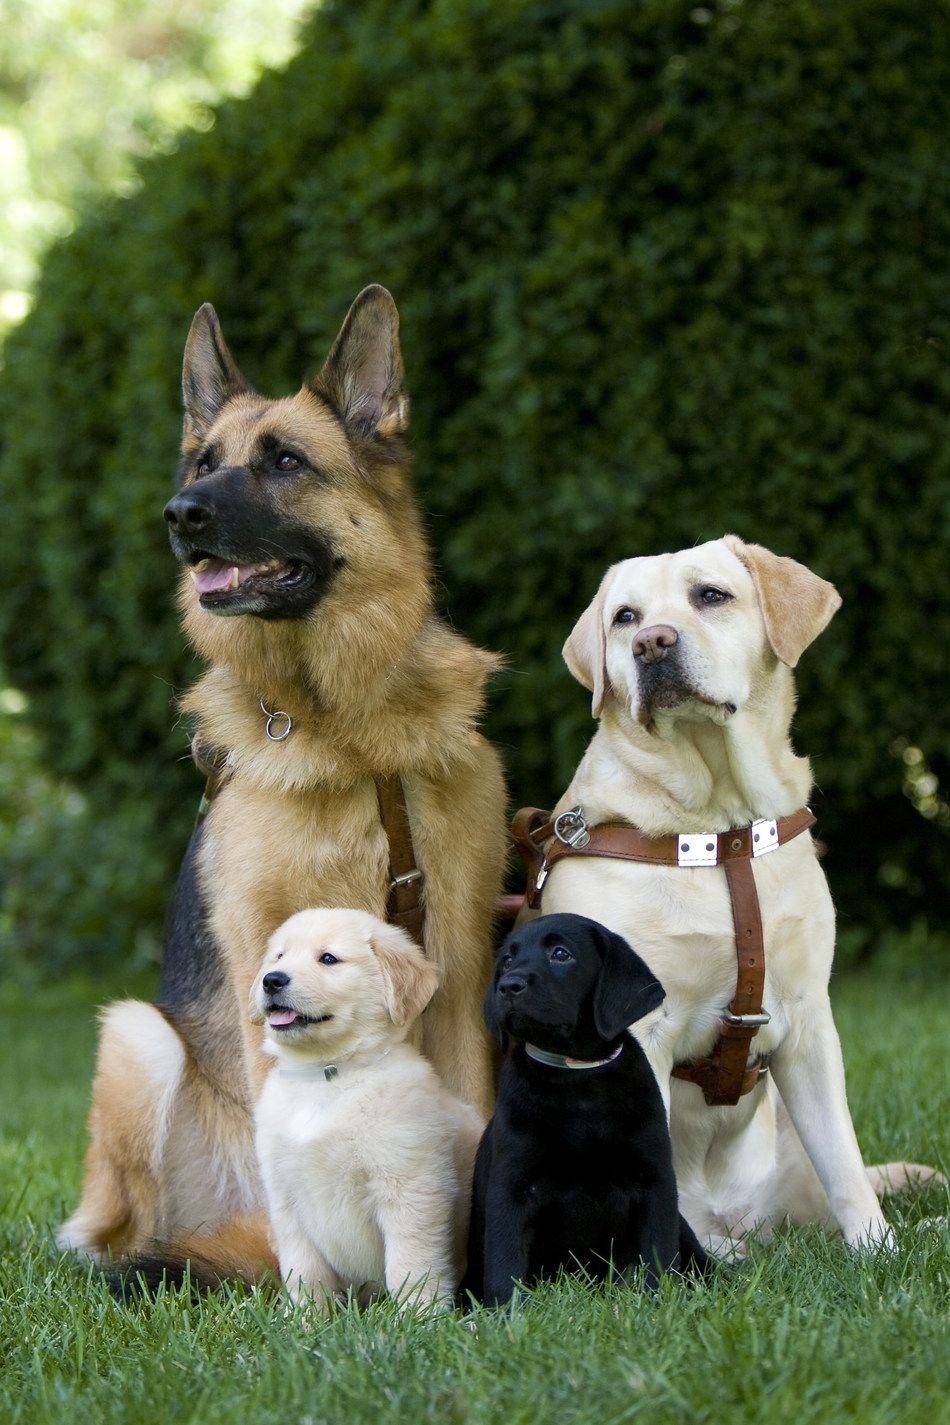 The Seeing Eye celebrates its 90th anniversary in January. The non-profit breeds, raises and trains German shepherds, Labrador retrievers, golden retrievers (shown) to guide people who are blind and visually impaired.